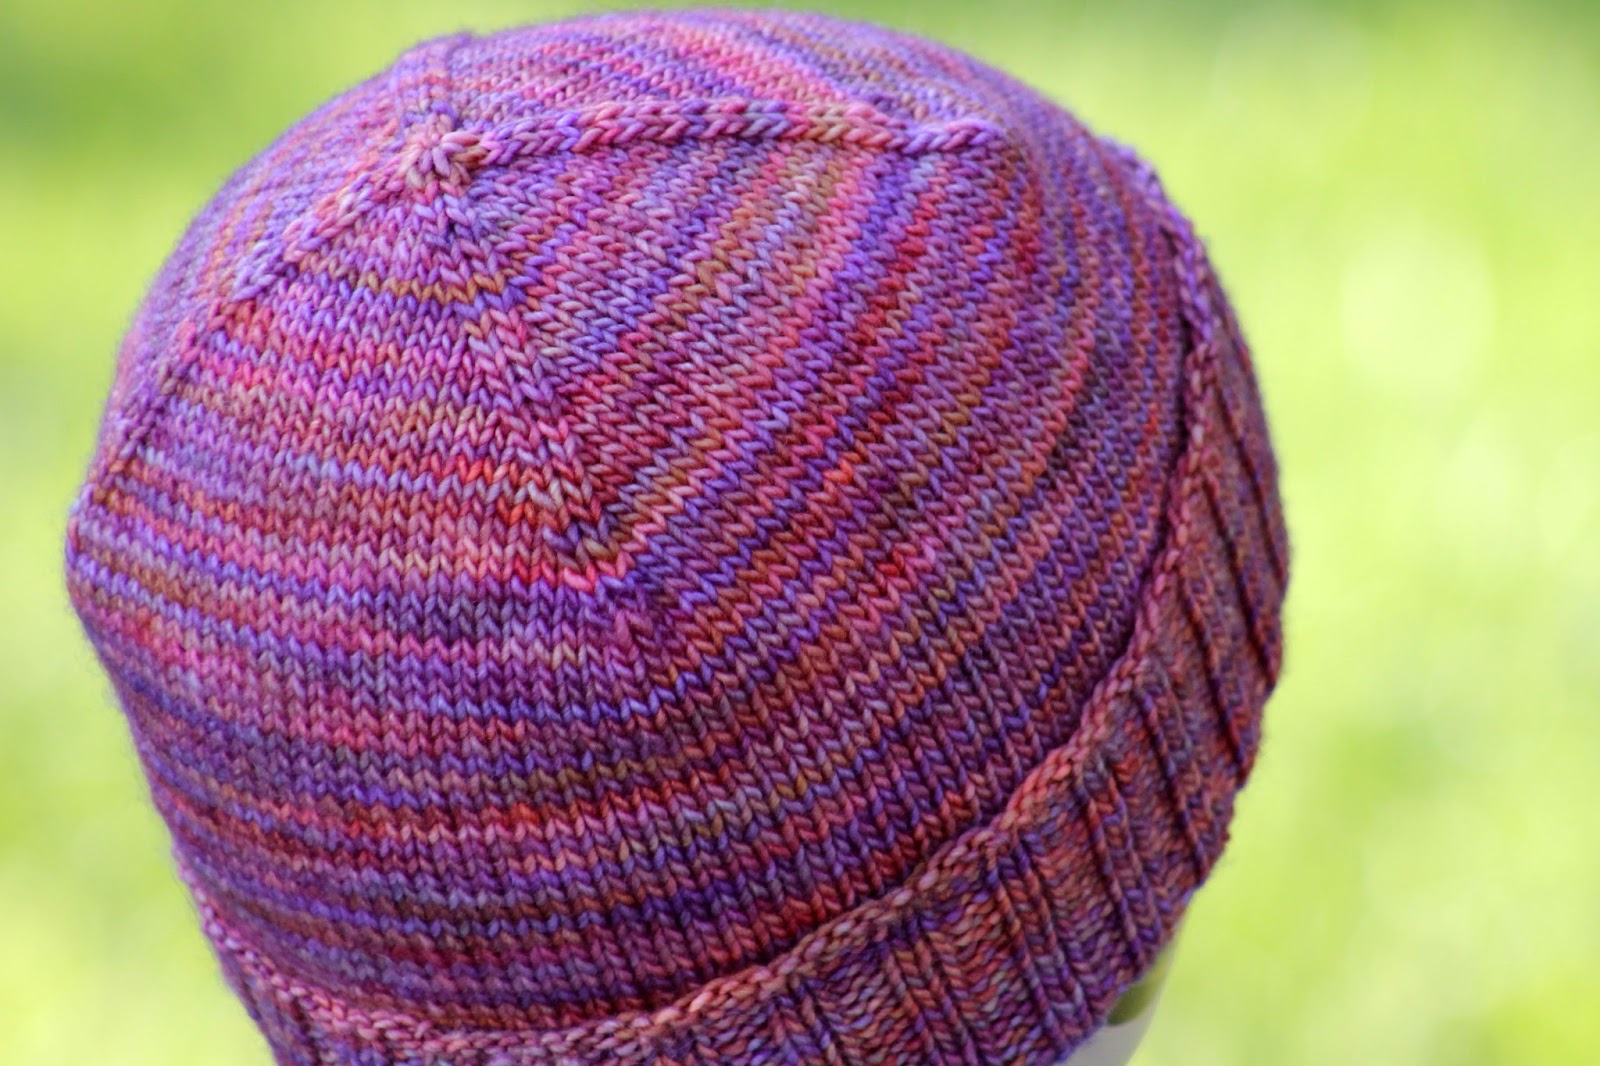 Balls to the Walls Knits: Build-Your-Own DK Weight Hat